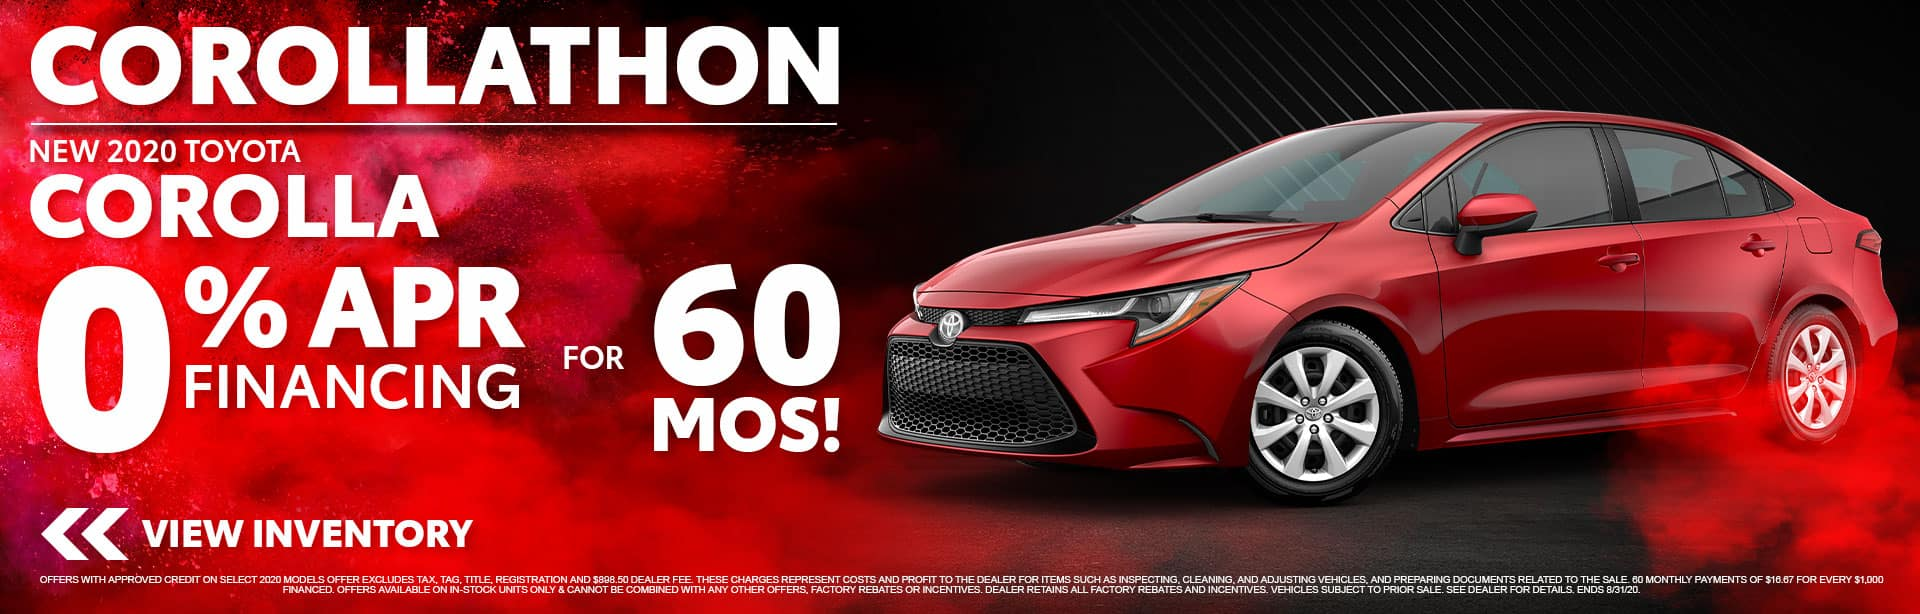 New 2020 Toyota Corolla with 0% APR Financing for 60 Months at Bev Smith Toyota!